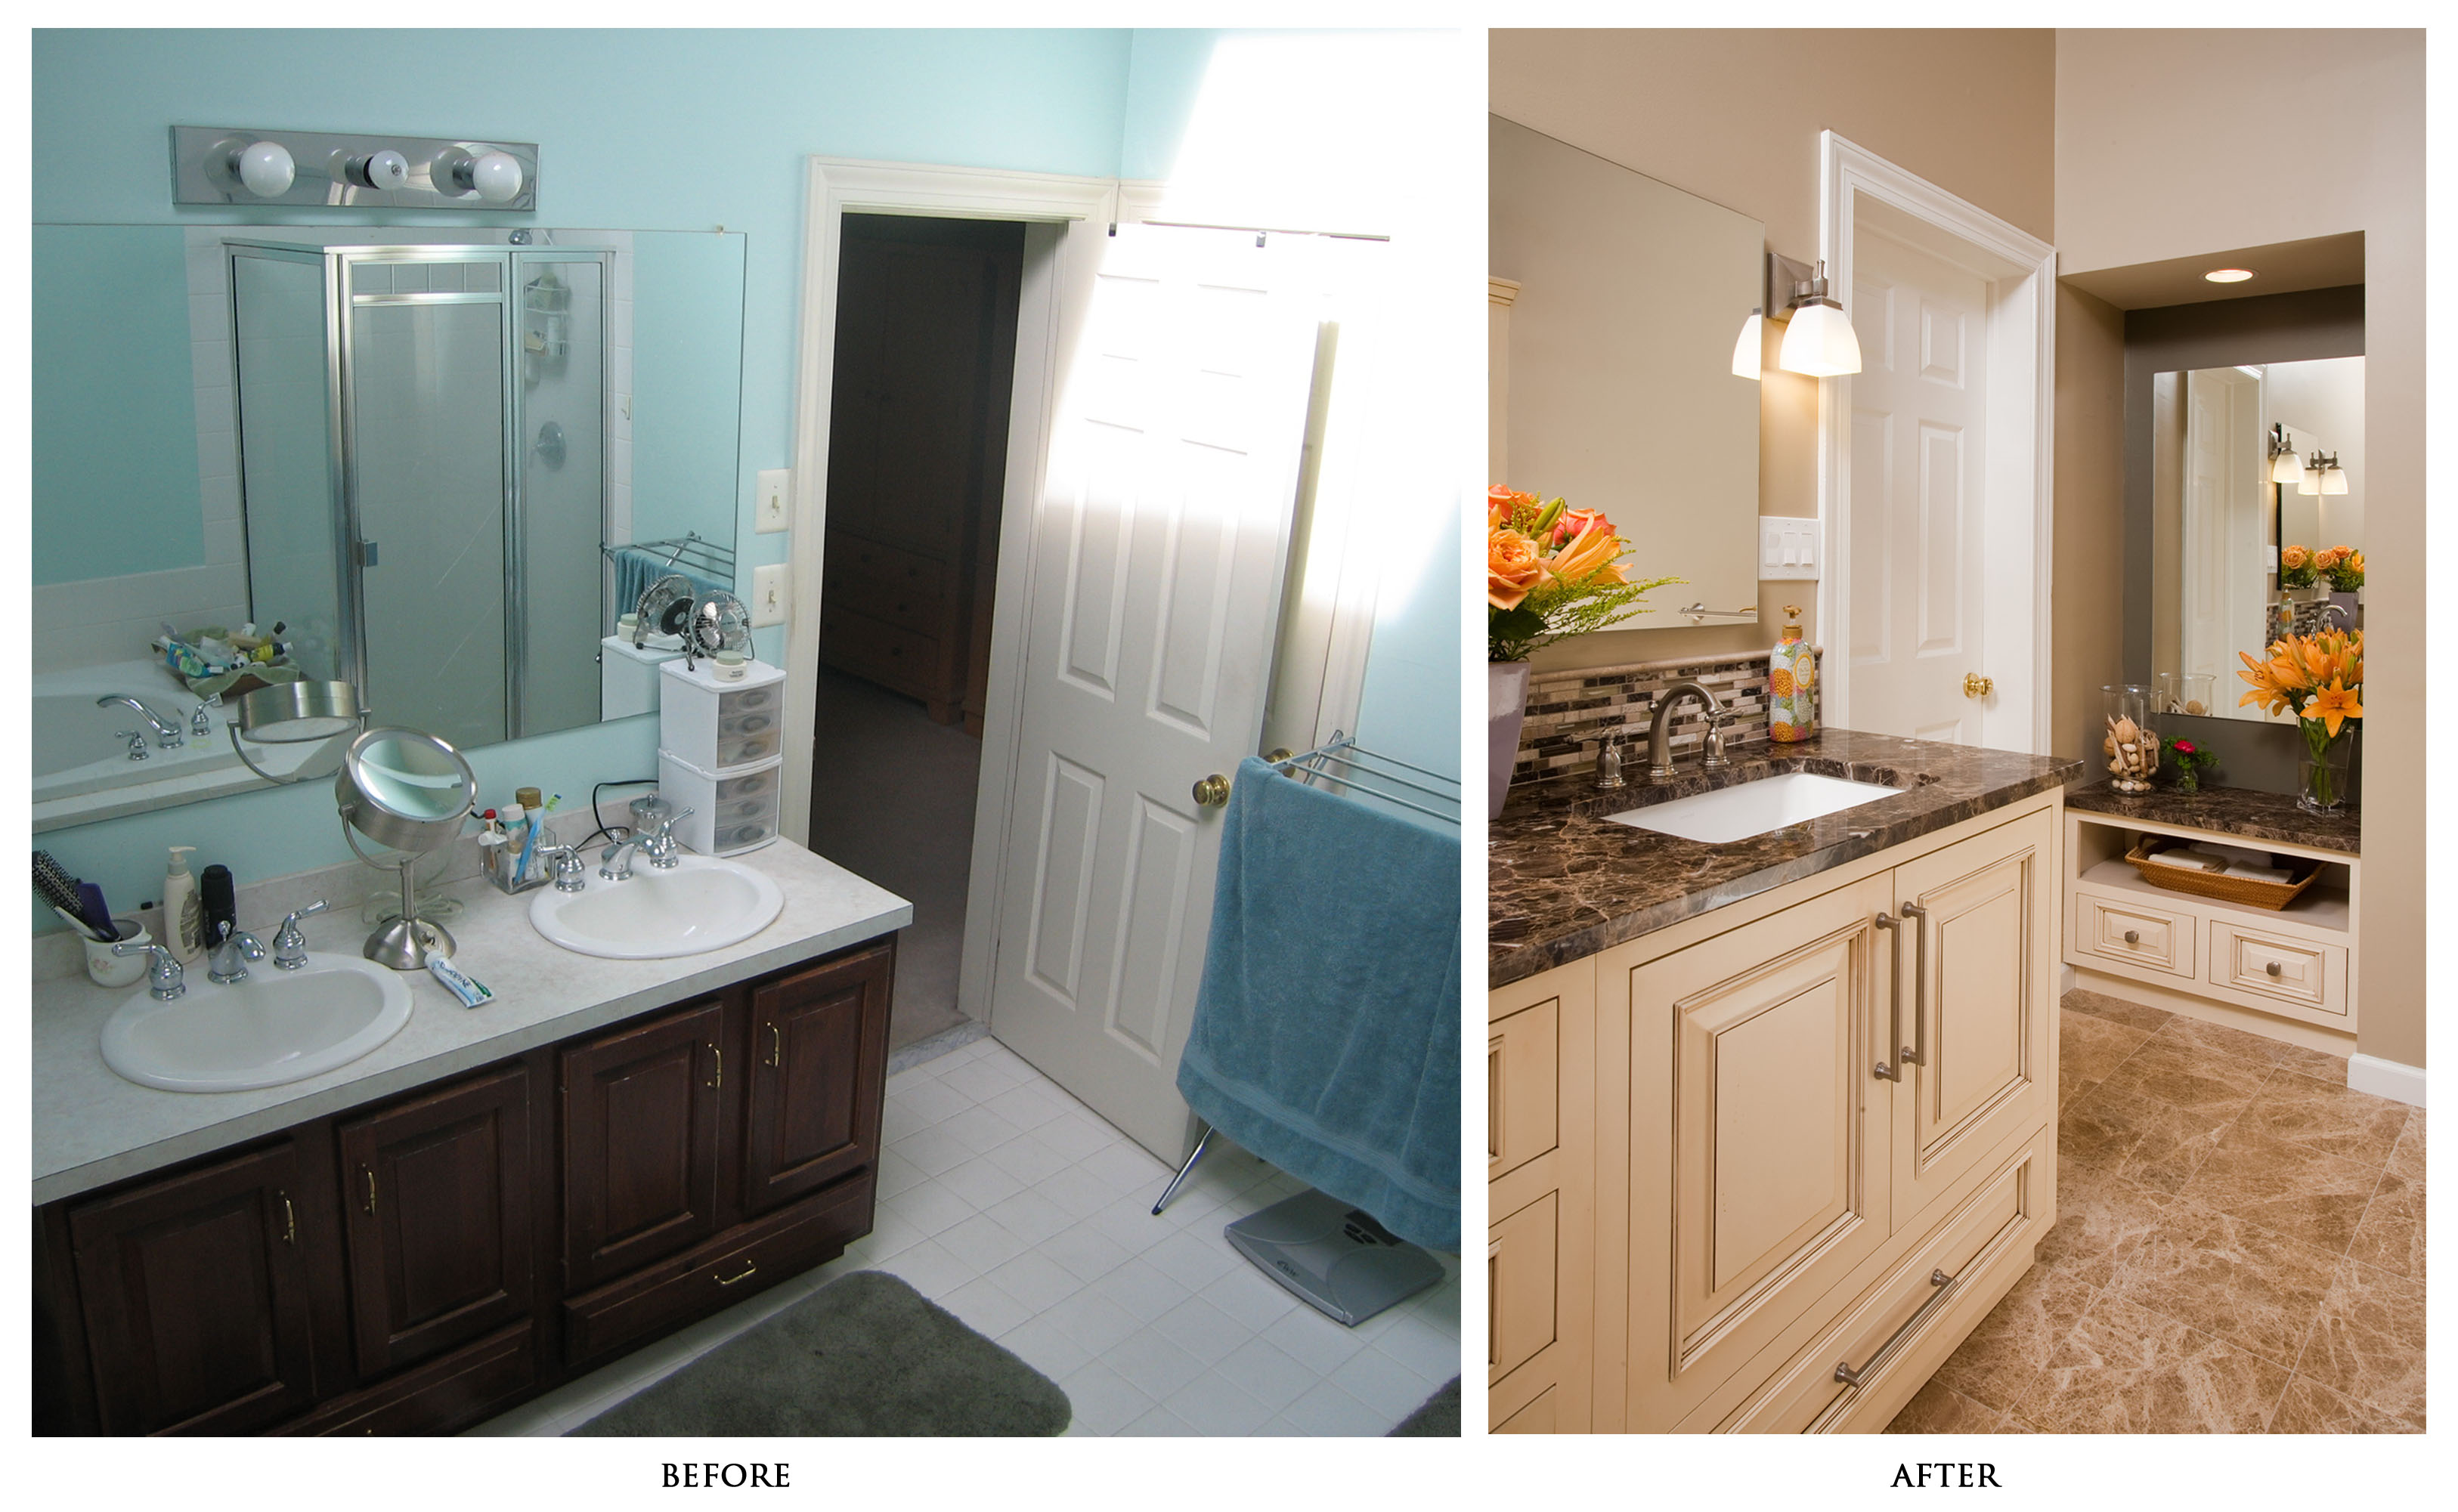 Before And After Diy Bathroom Renovation Ideas Marvelous Remodel Photos Design Inspirations Project Plan